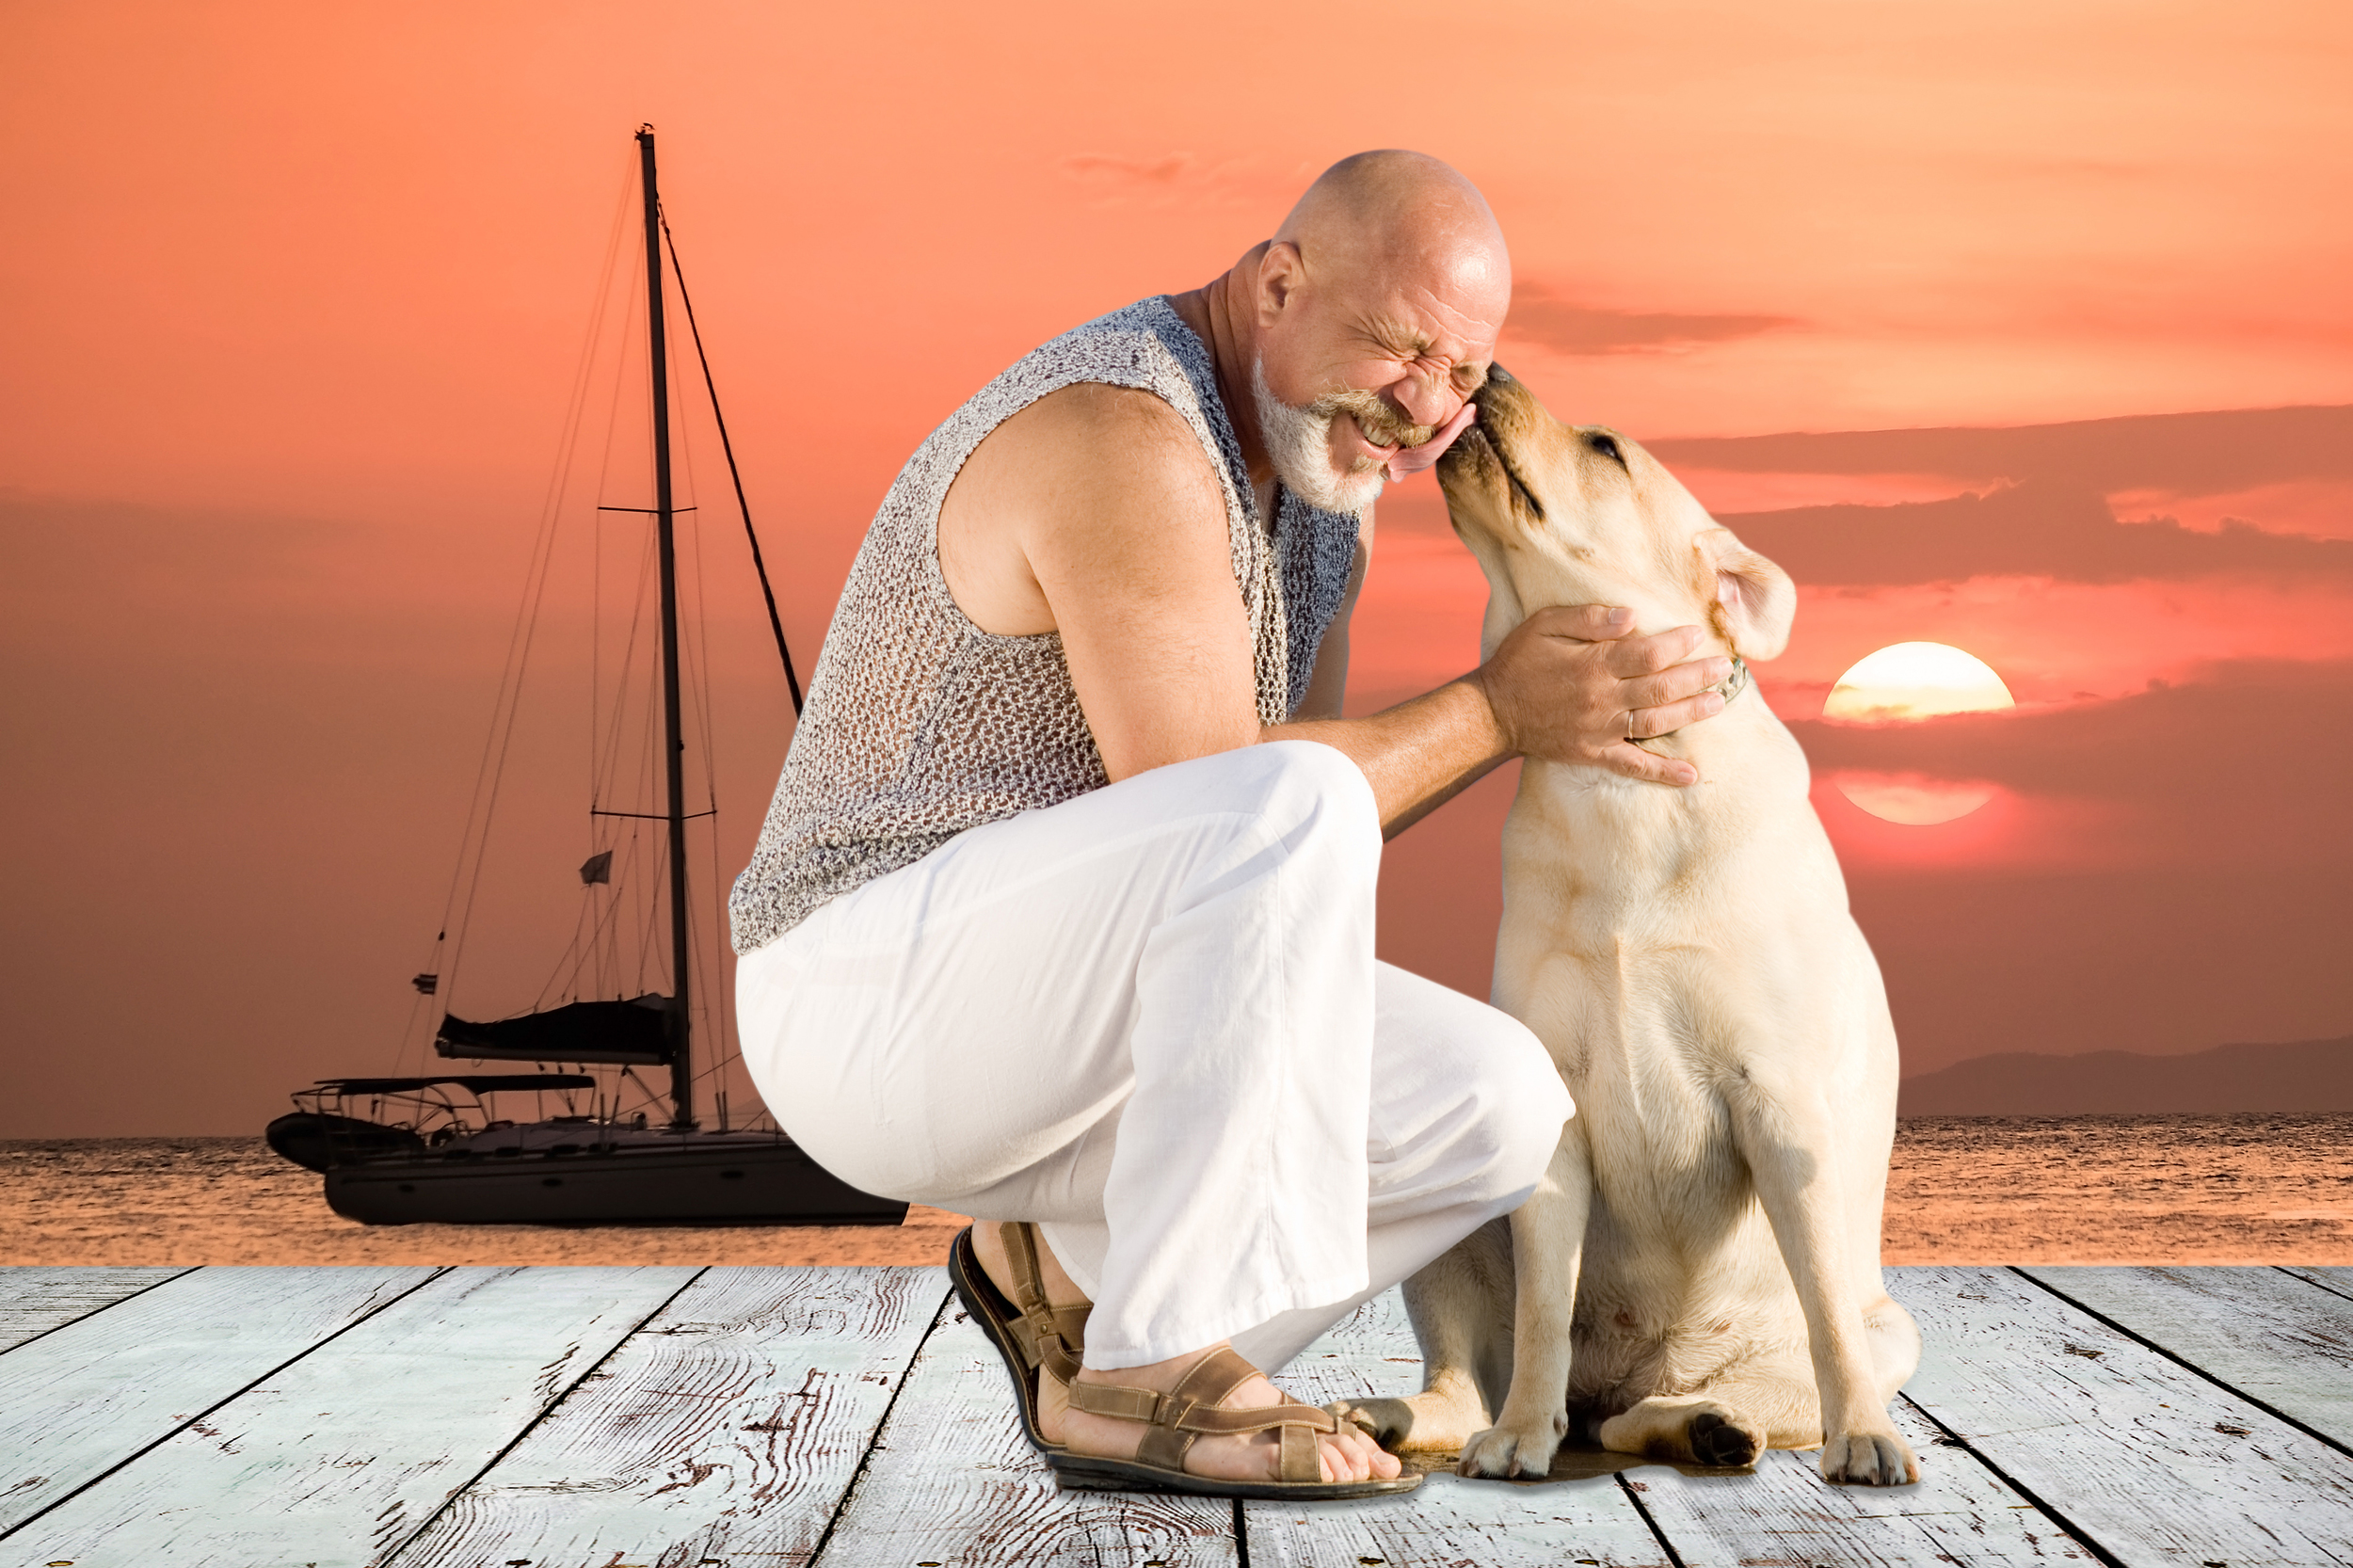 Dog with man on beach with sailing yacht